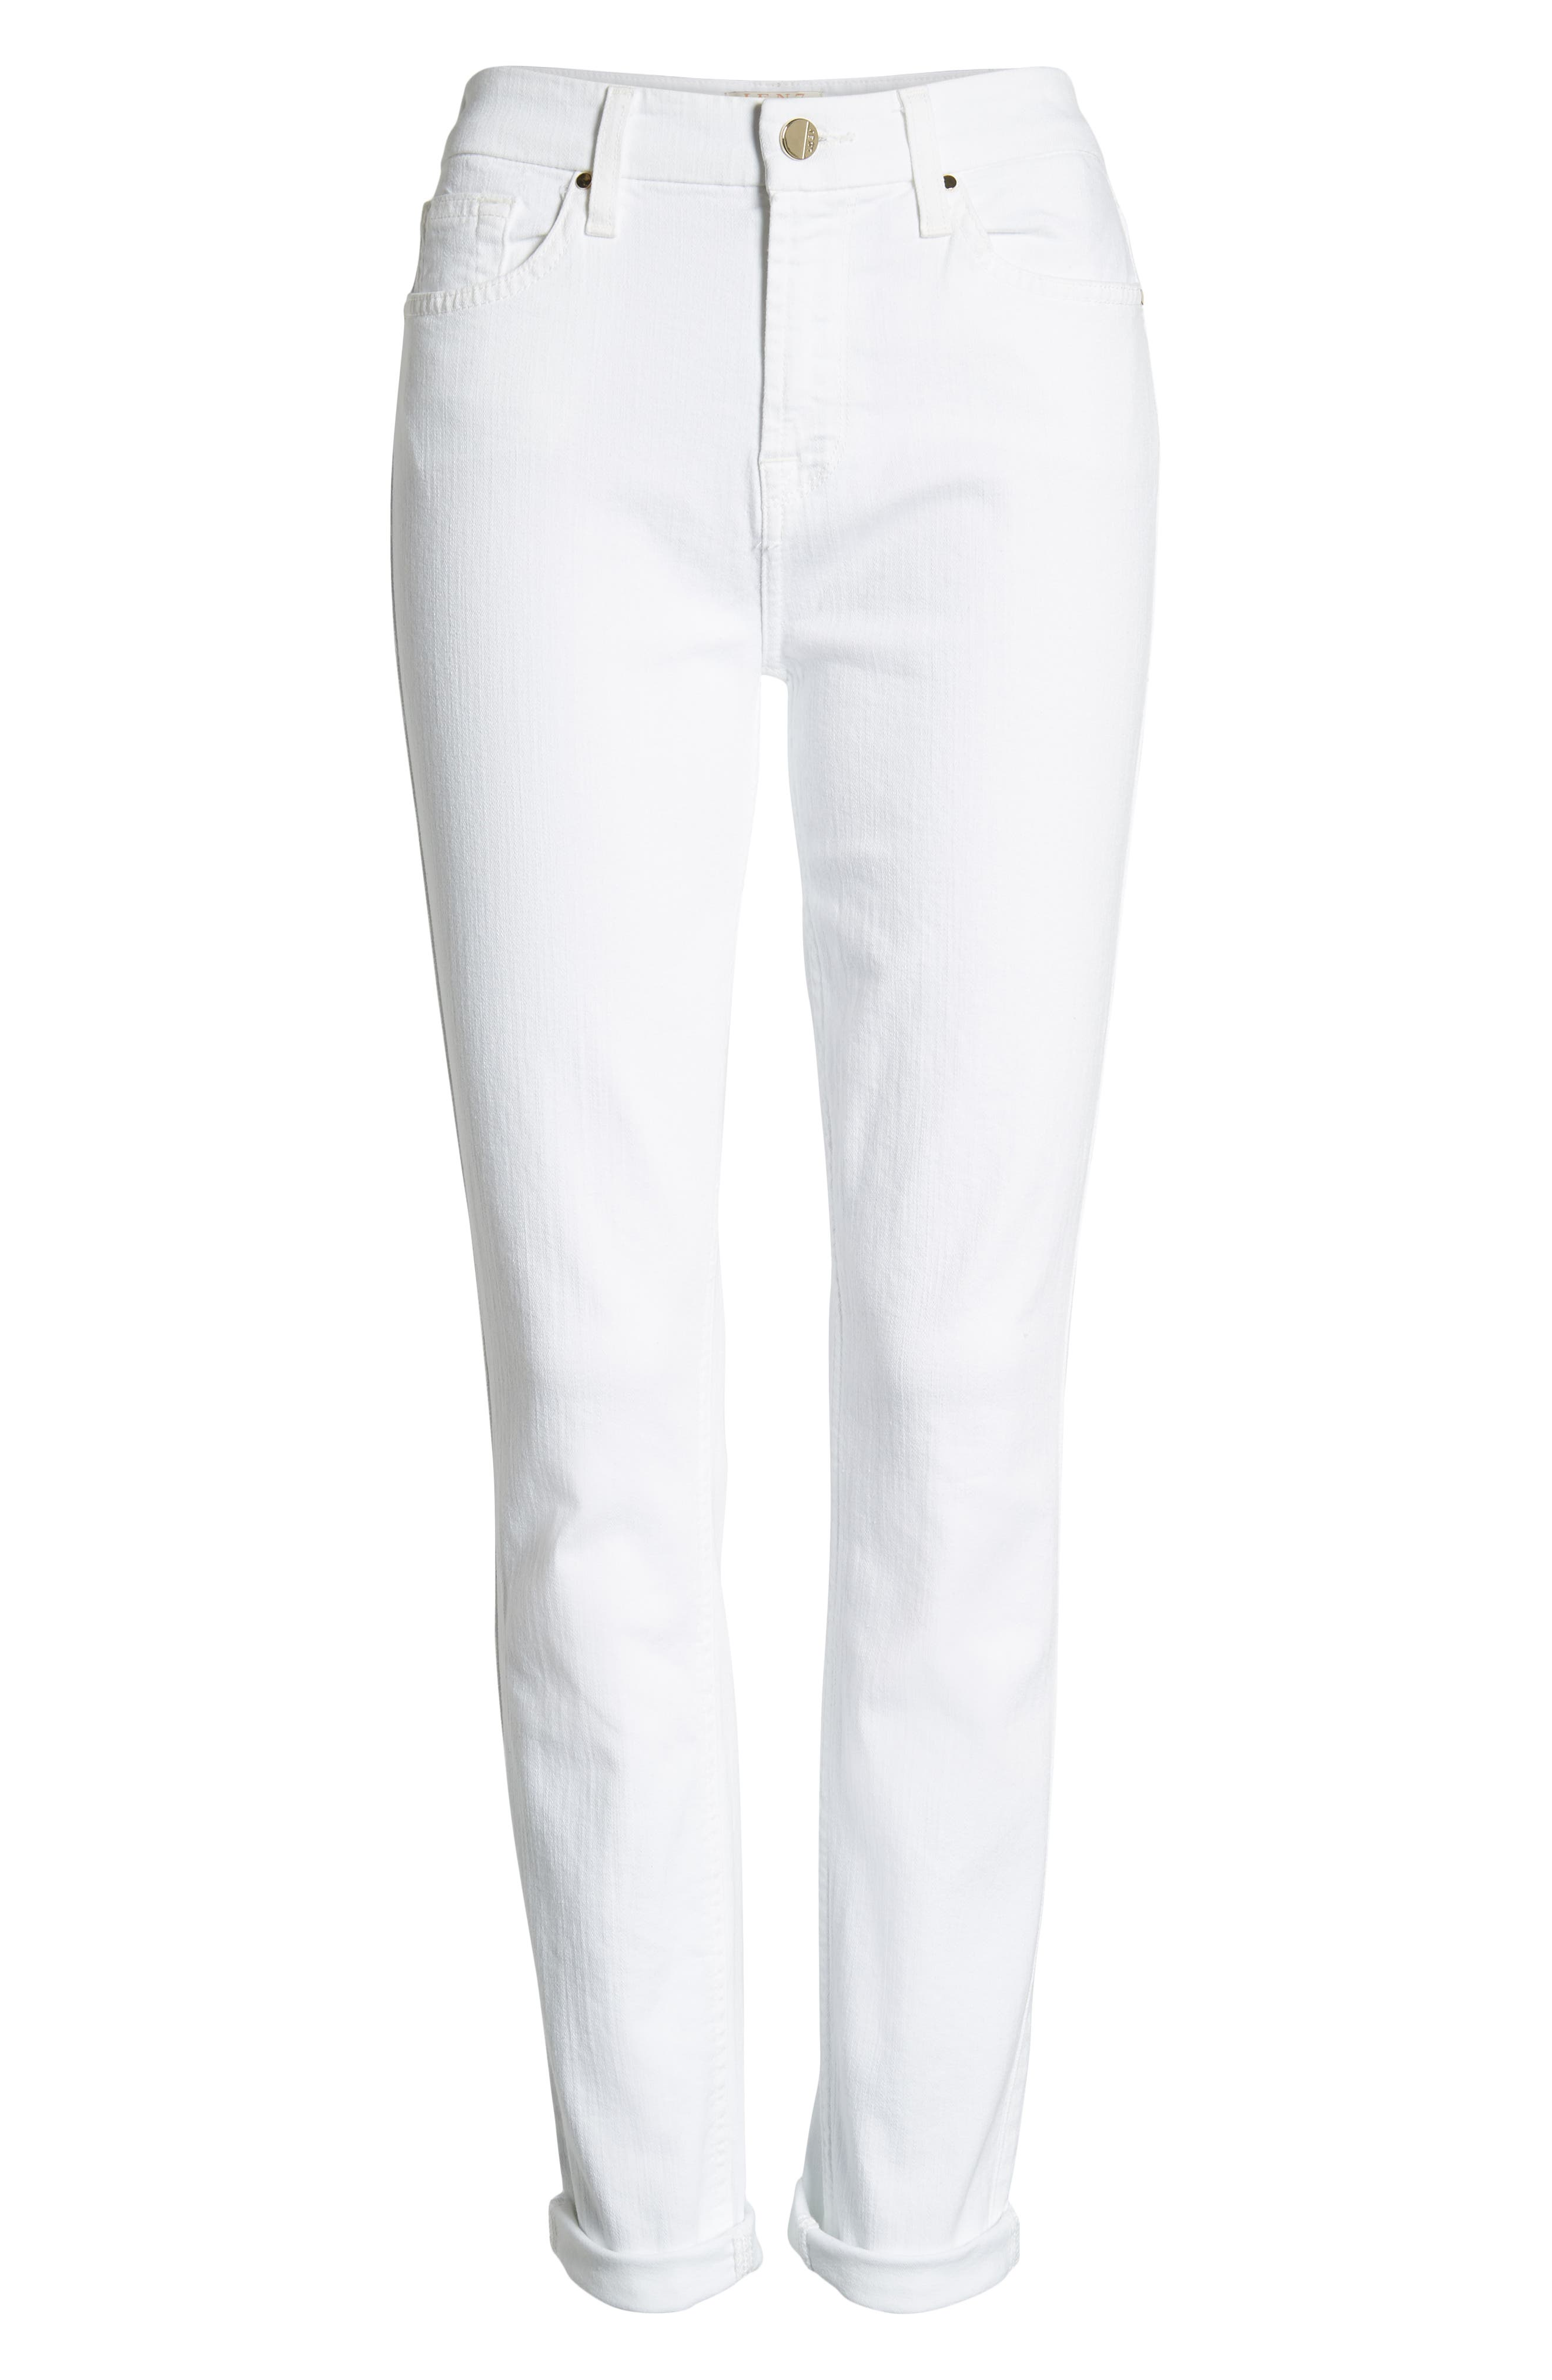 JEN7 BY 7 FOR ALL MANKIND, Stretch Skinny Jeans, Alternate thumbnail 7, color, WHITE